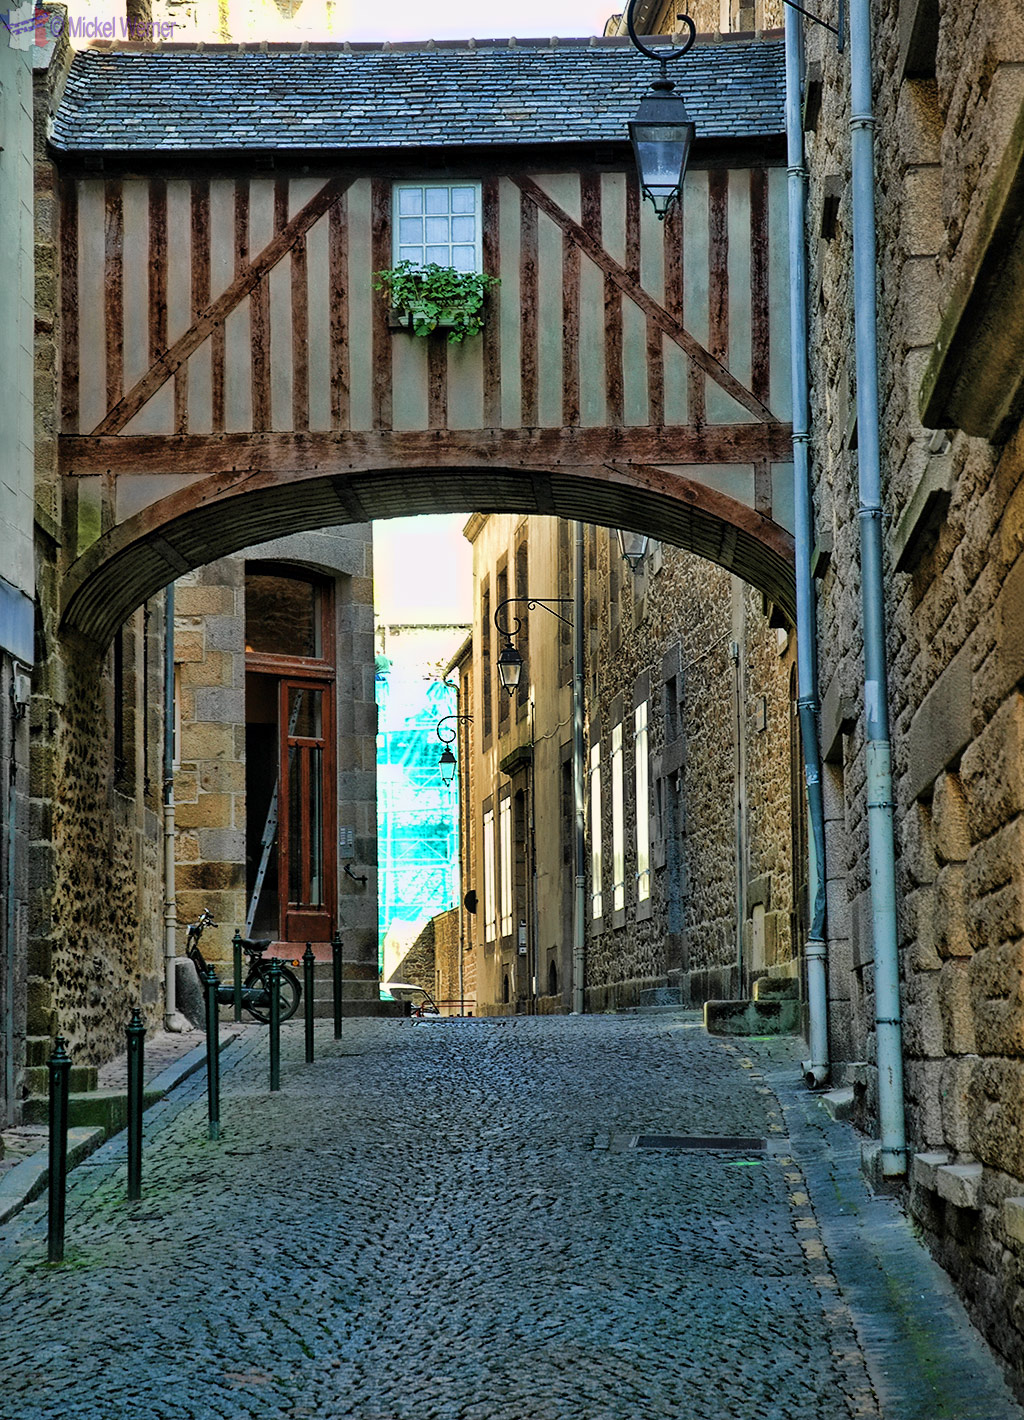 Inside the walled city of St. Malo